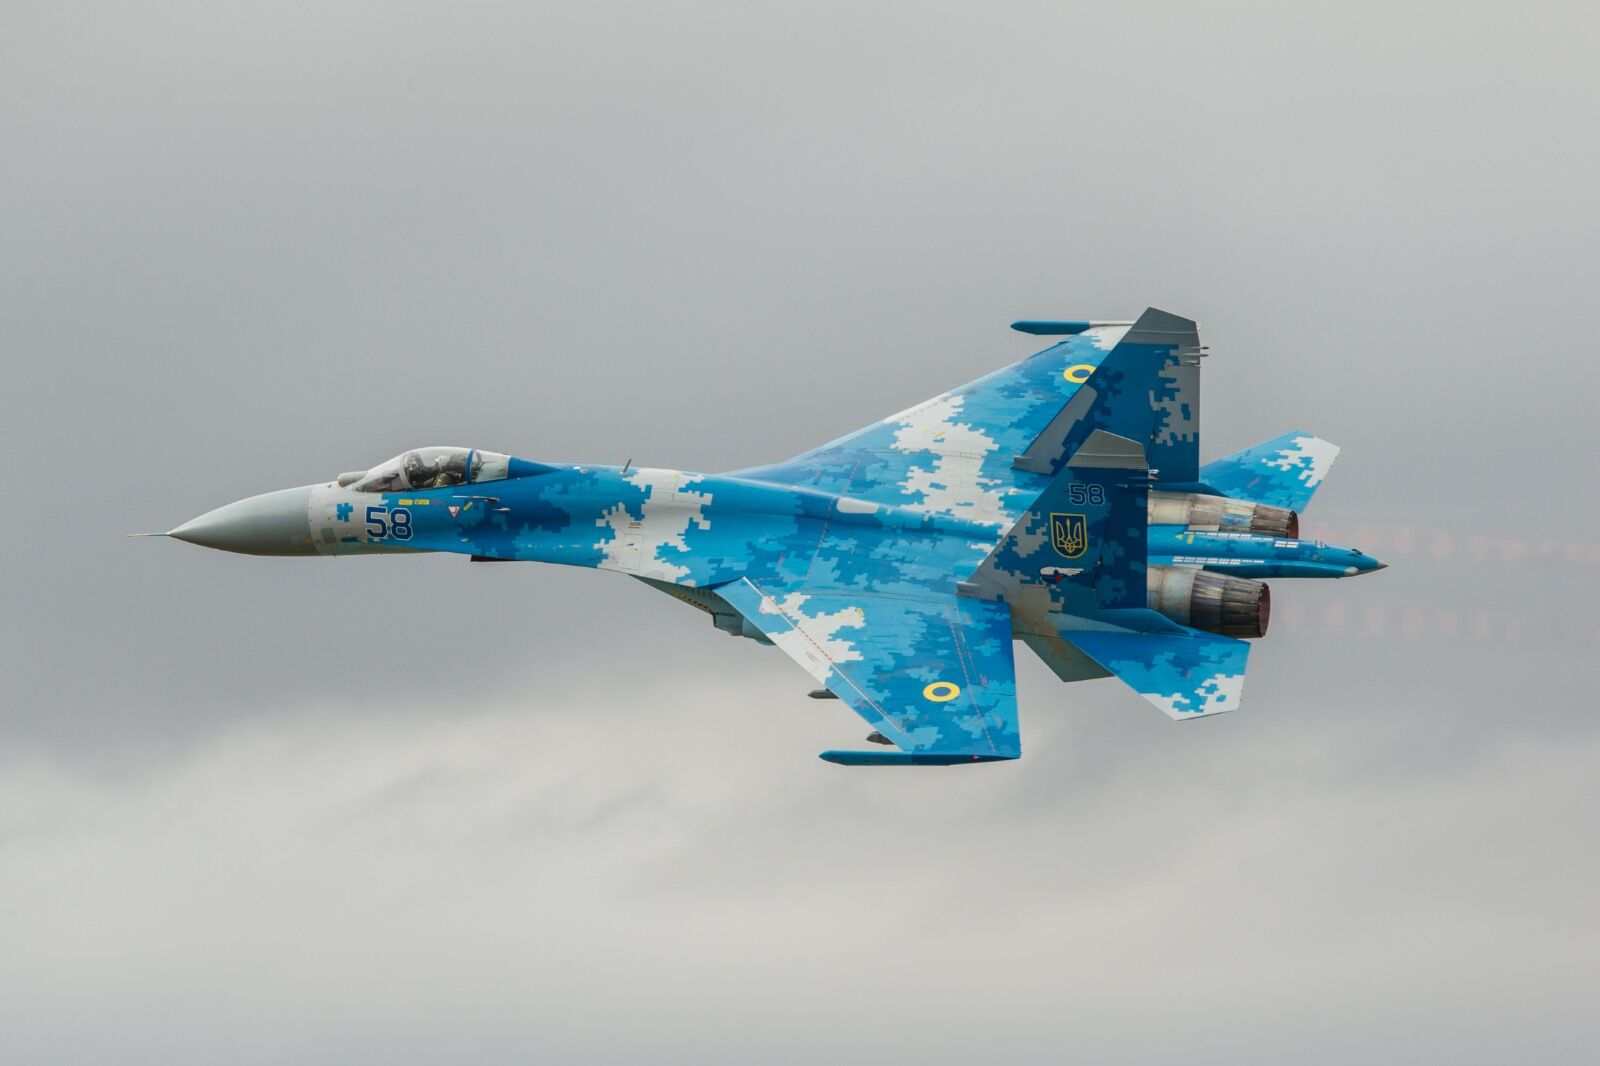 The Ukrainian Airforce SU27 Flanker over Fairford.